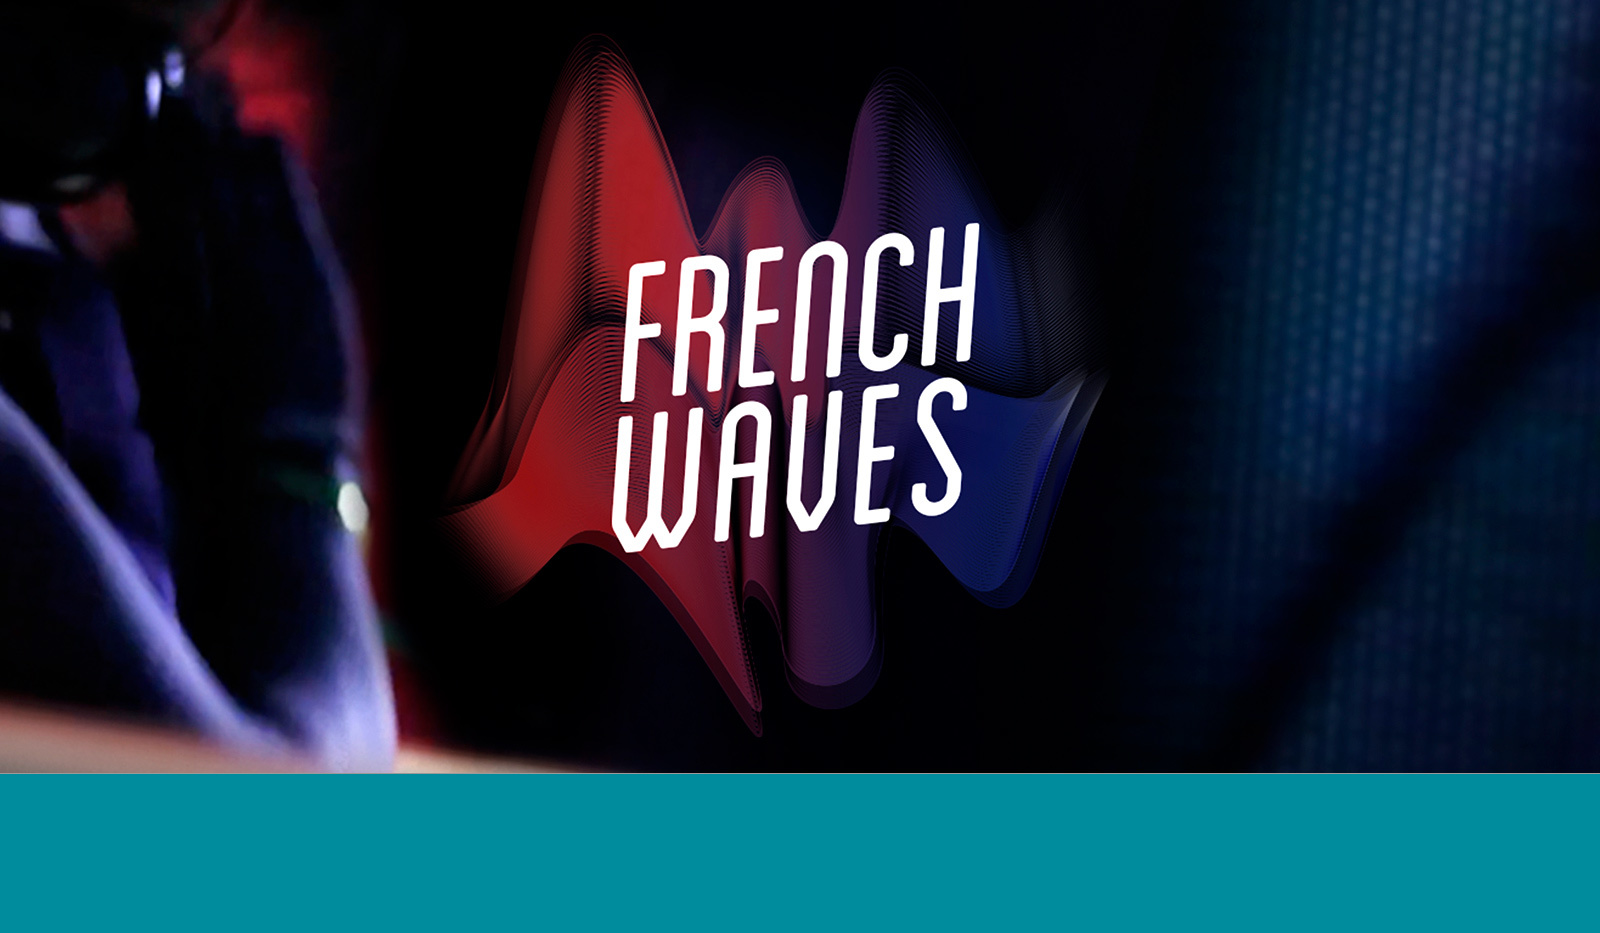 French Waves - Sónar+D